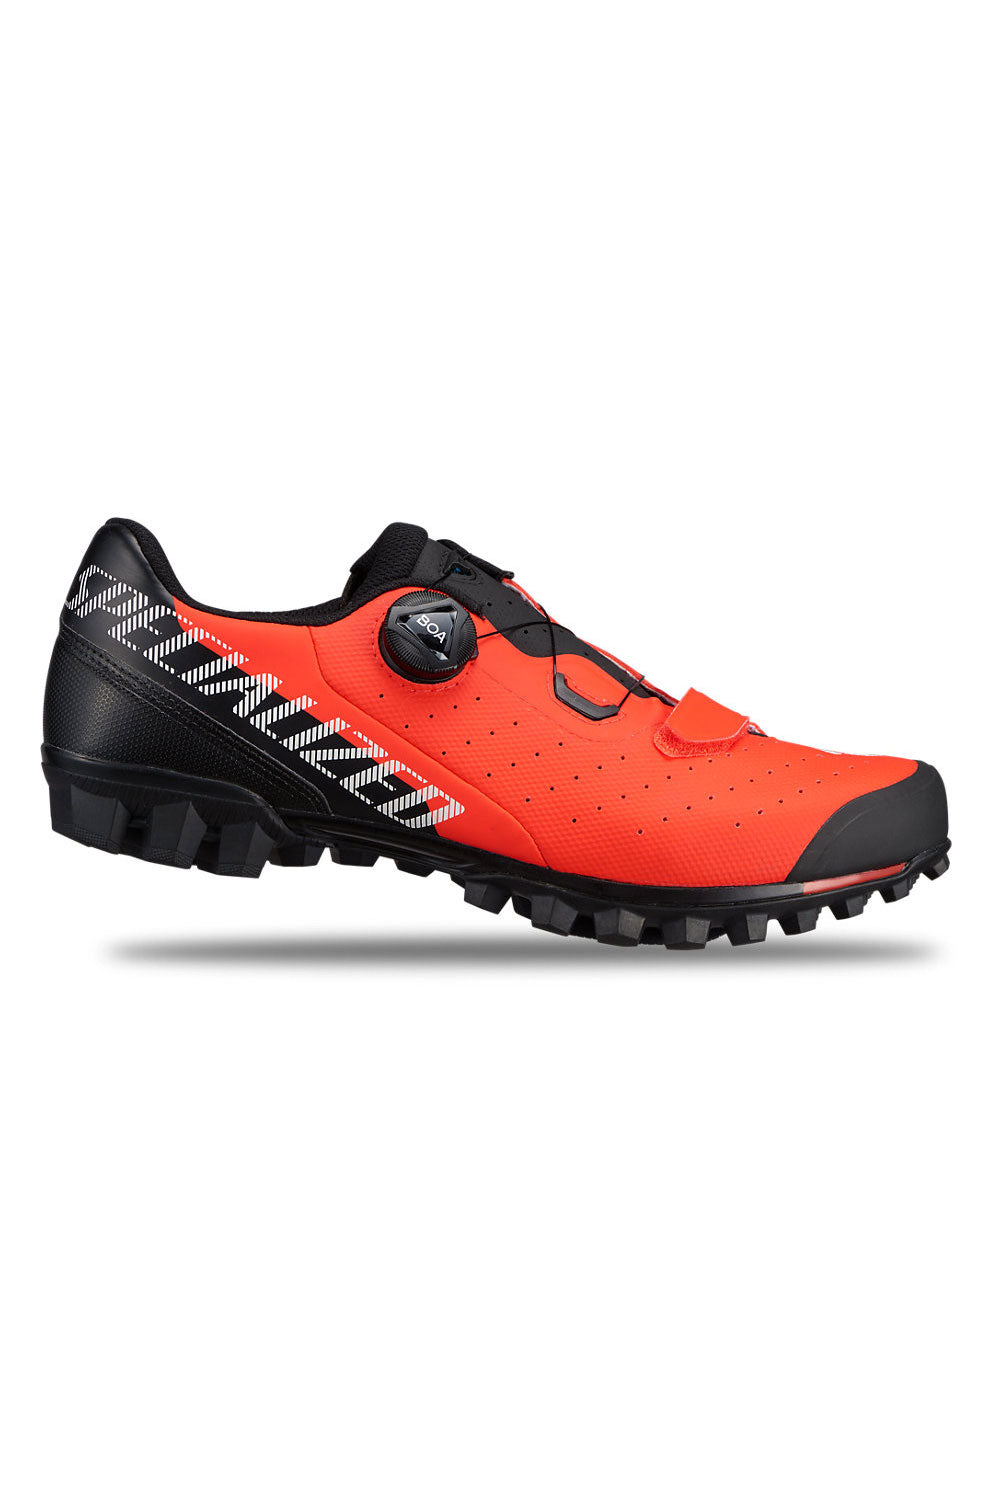 SPECIALIZED RECON 2.0 MOUNTAIN BIKE SHOE